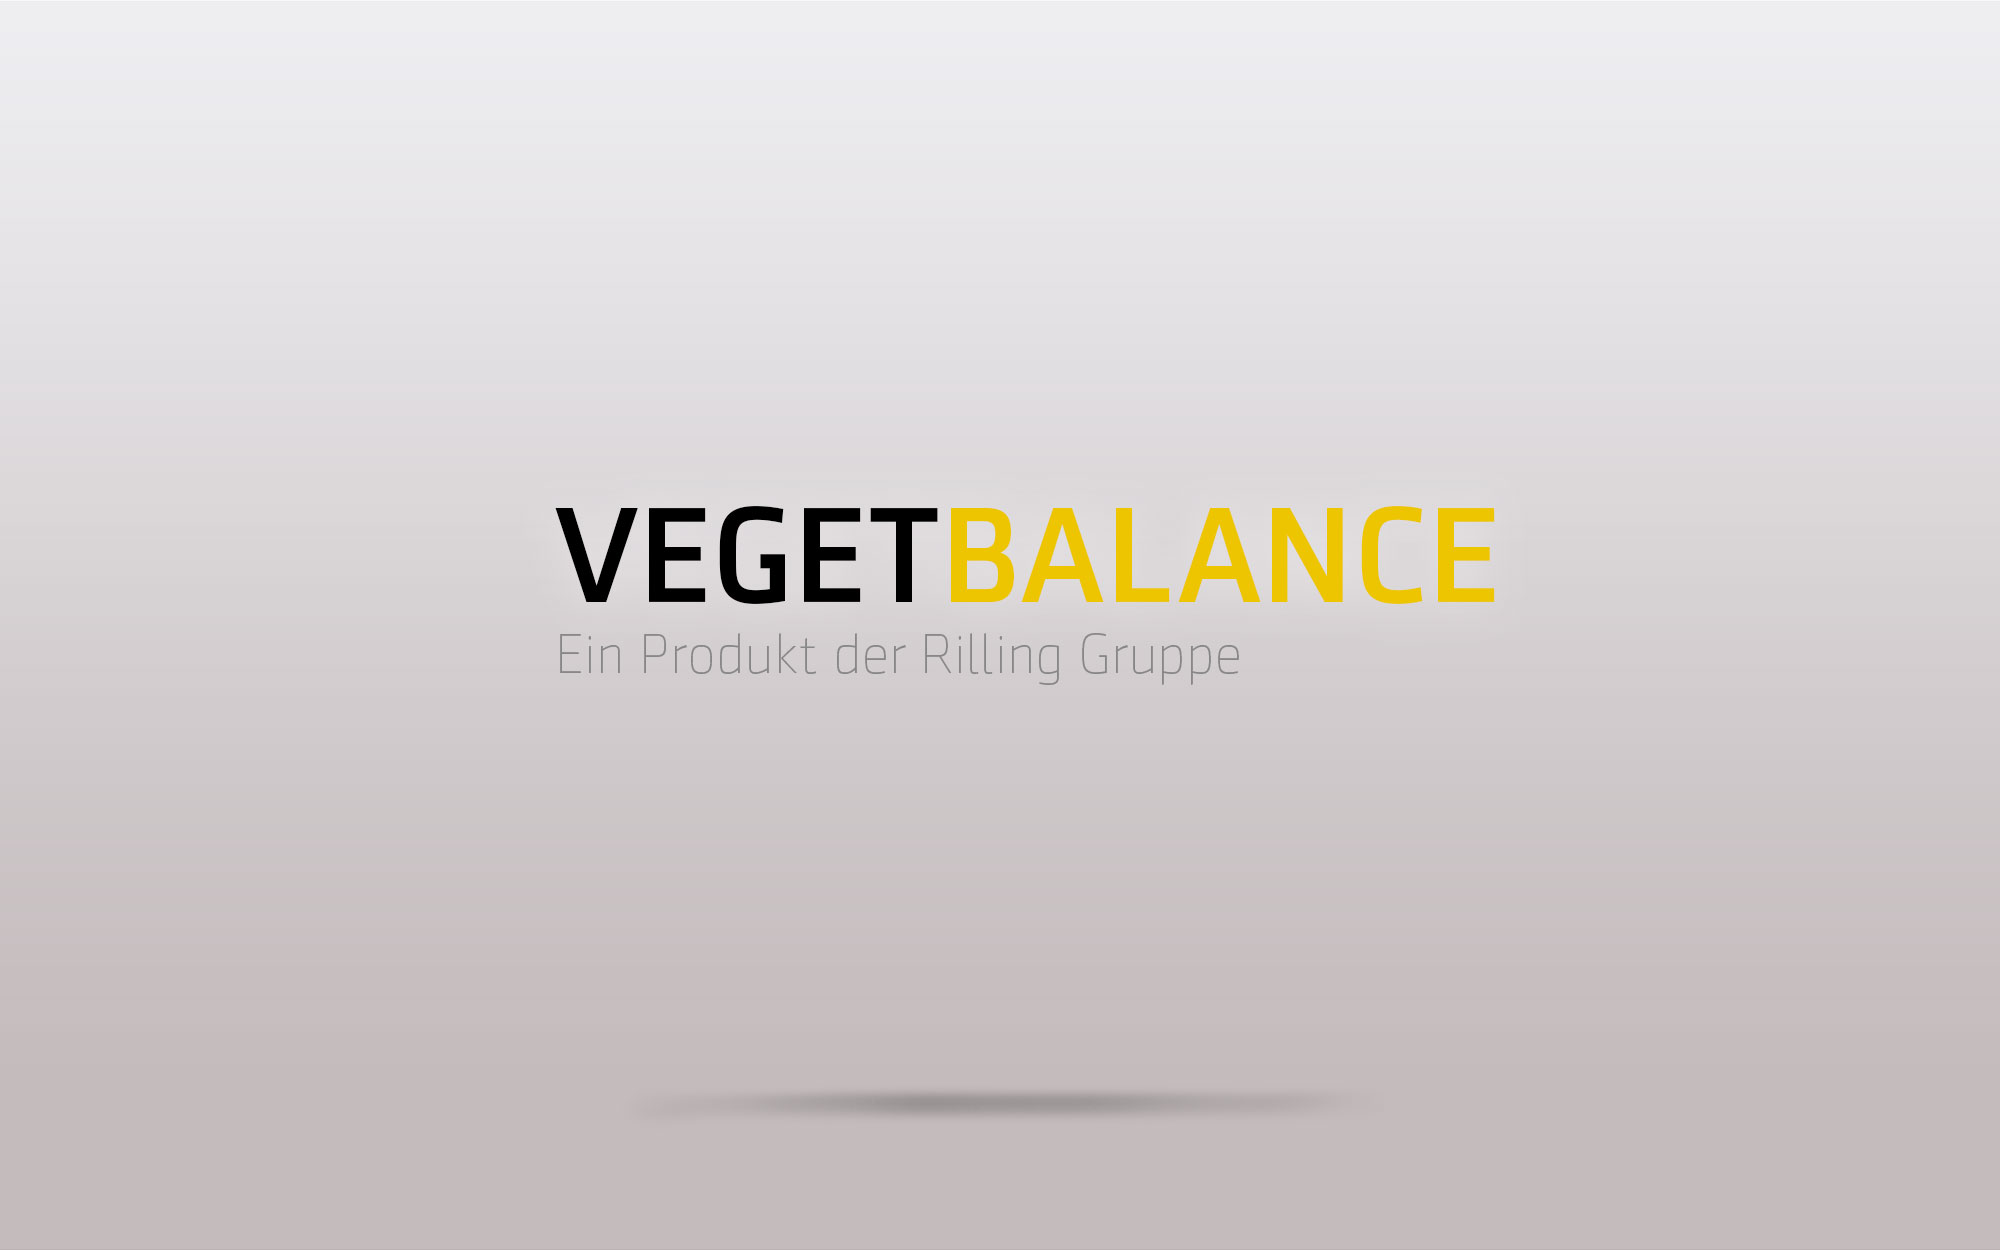 Corporate Design - VegetBalance